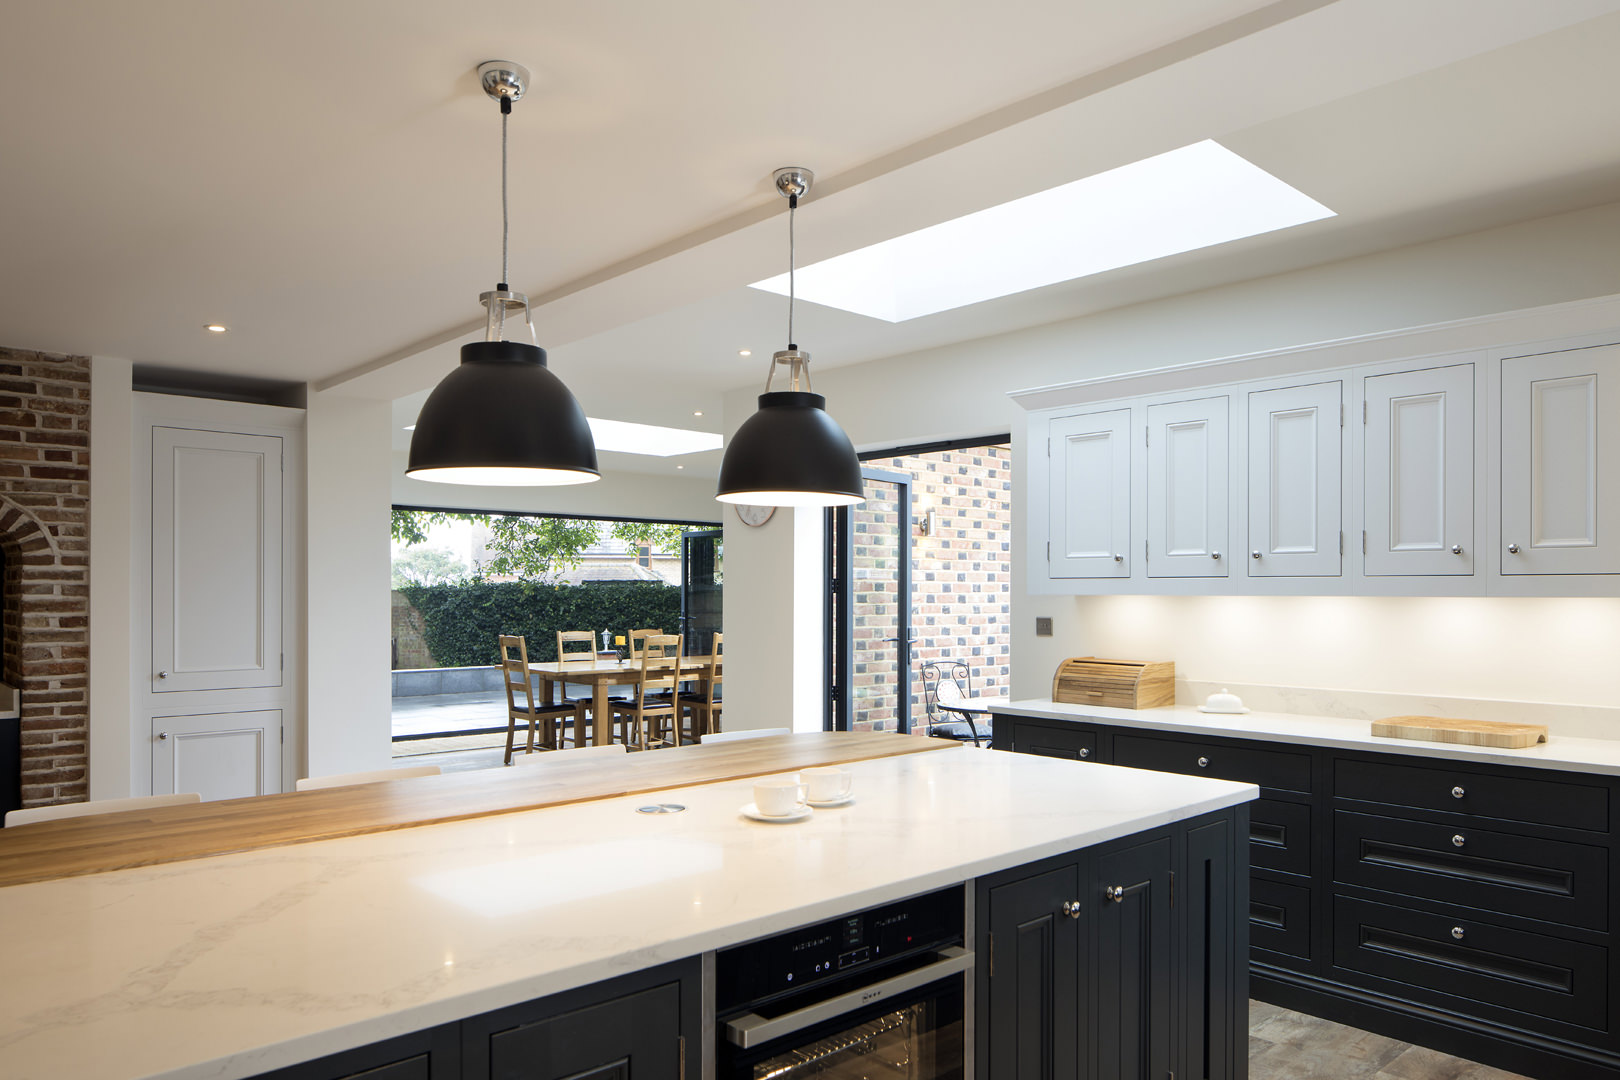 A brick detailed single storey extension to this beautiful house on the edge of a conservation area in central Bedfordshire opened the kitchen and dining space up to the garden and natural light floods in through roof lantern lights